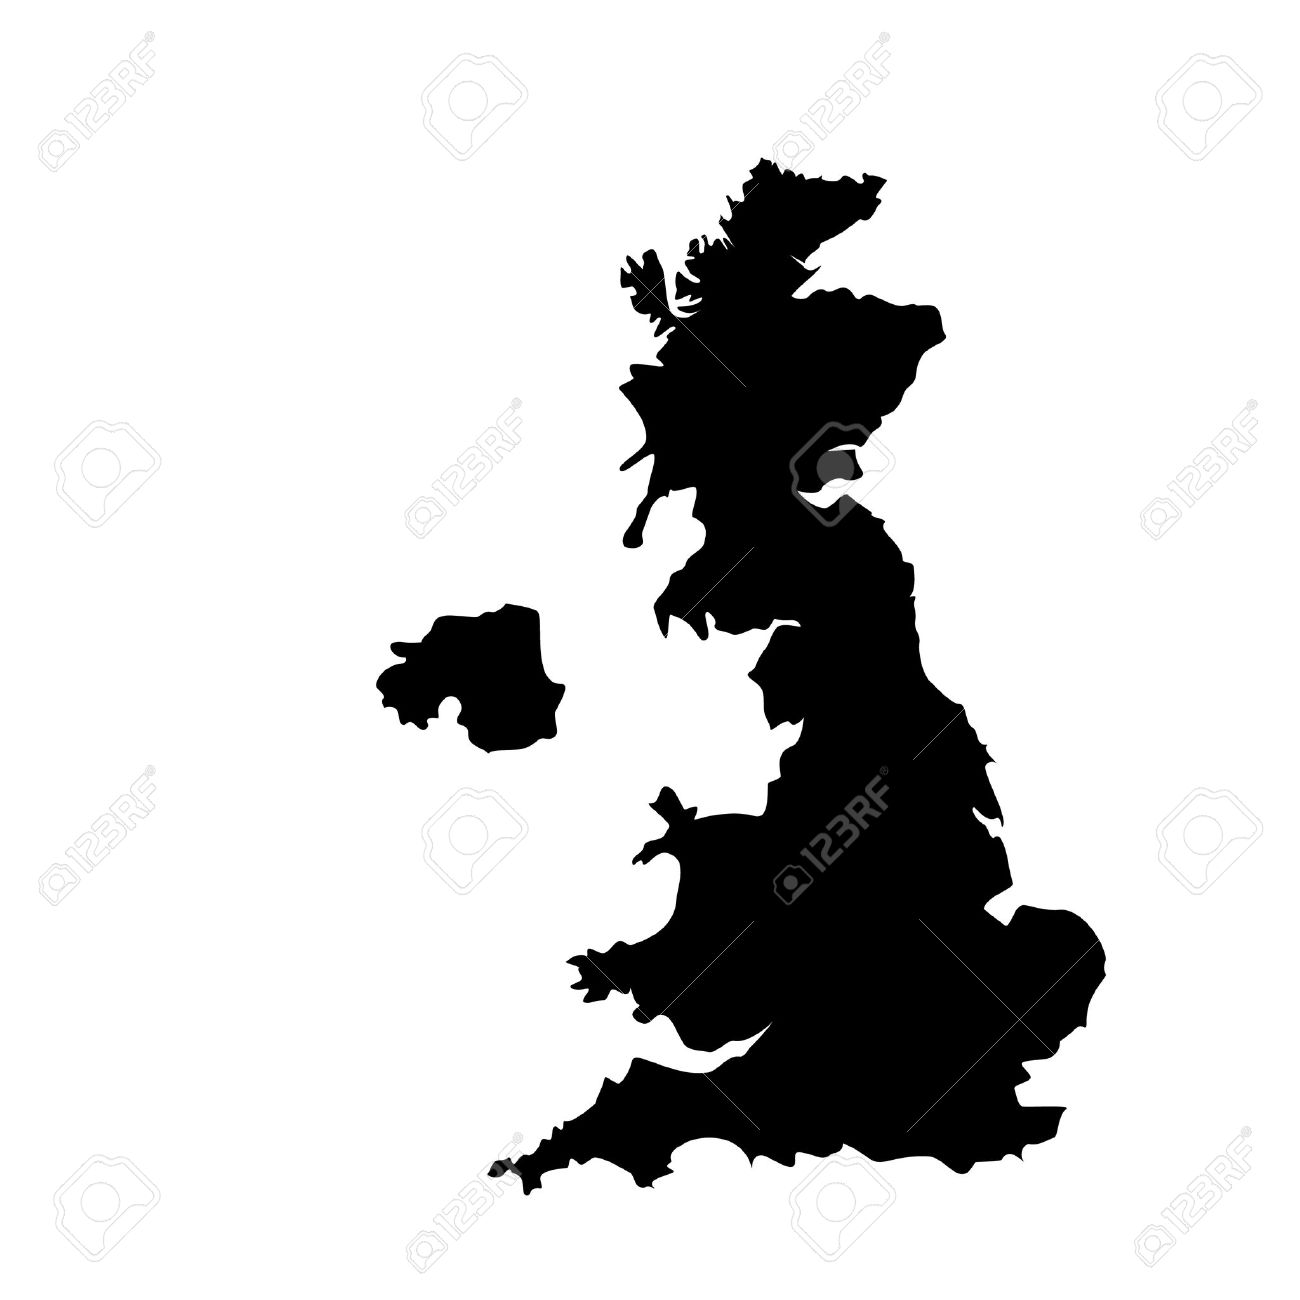 Vector Illustration Black Silhouette Of Uk Map England Map - United kingdom map vector